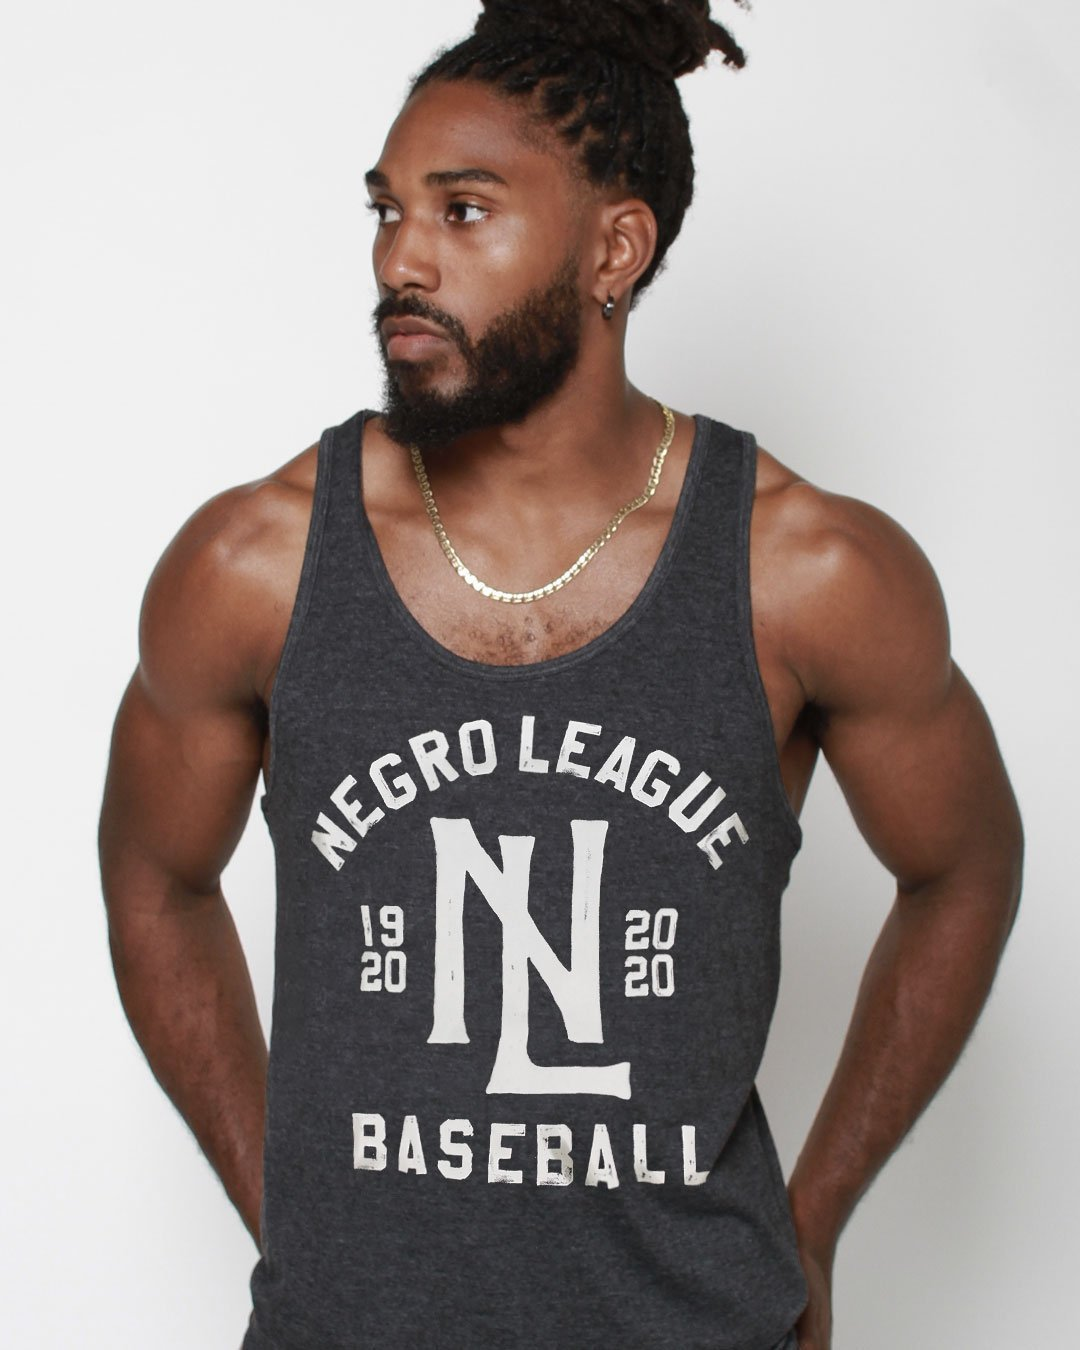 Negro League Baseball Centennial Tank - Roots of Inc dba Roots of Fight